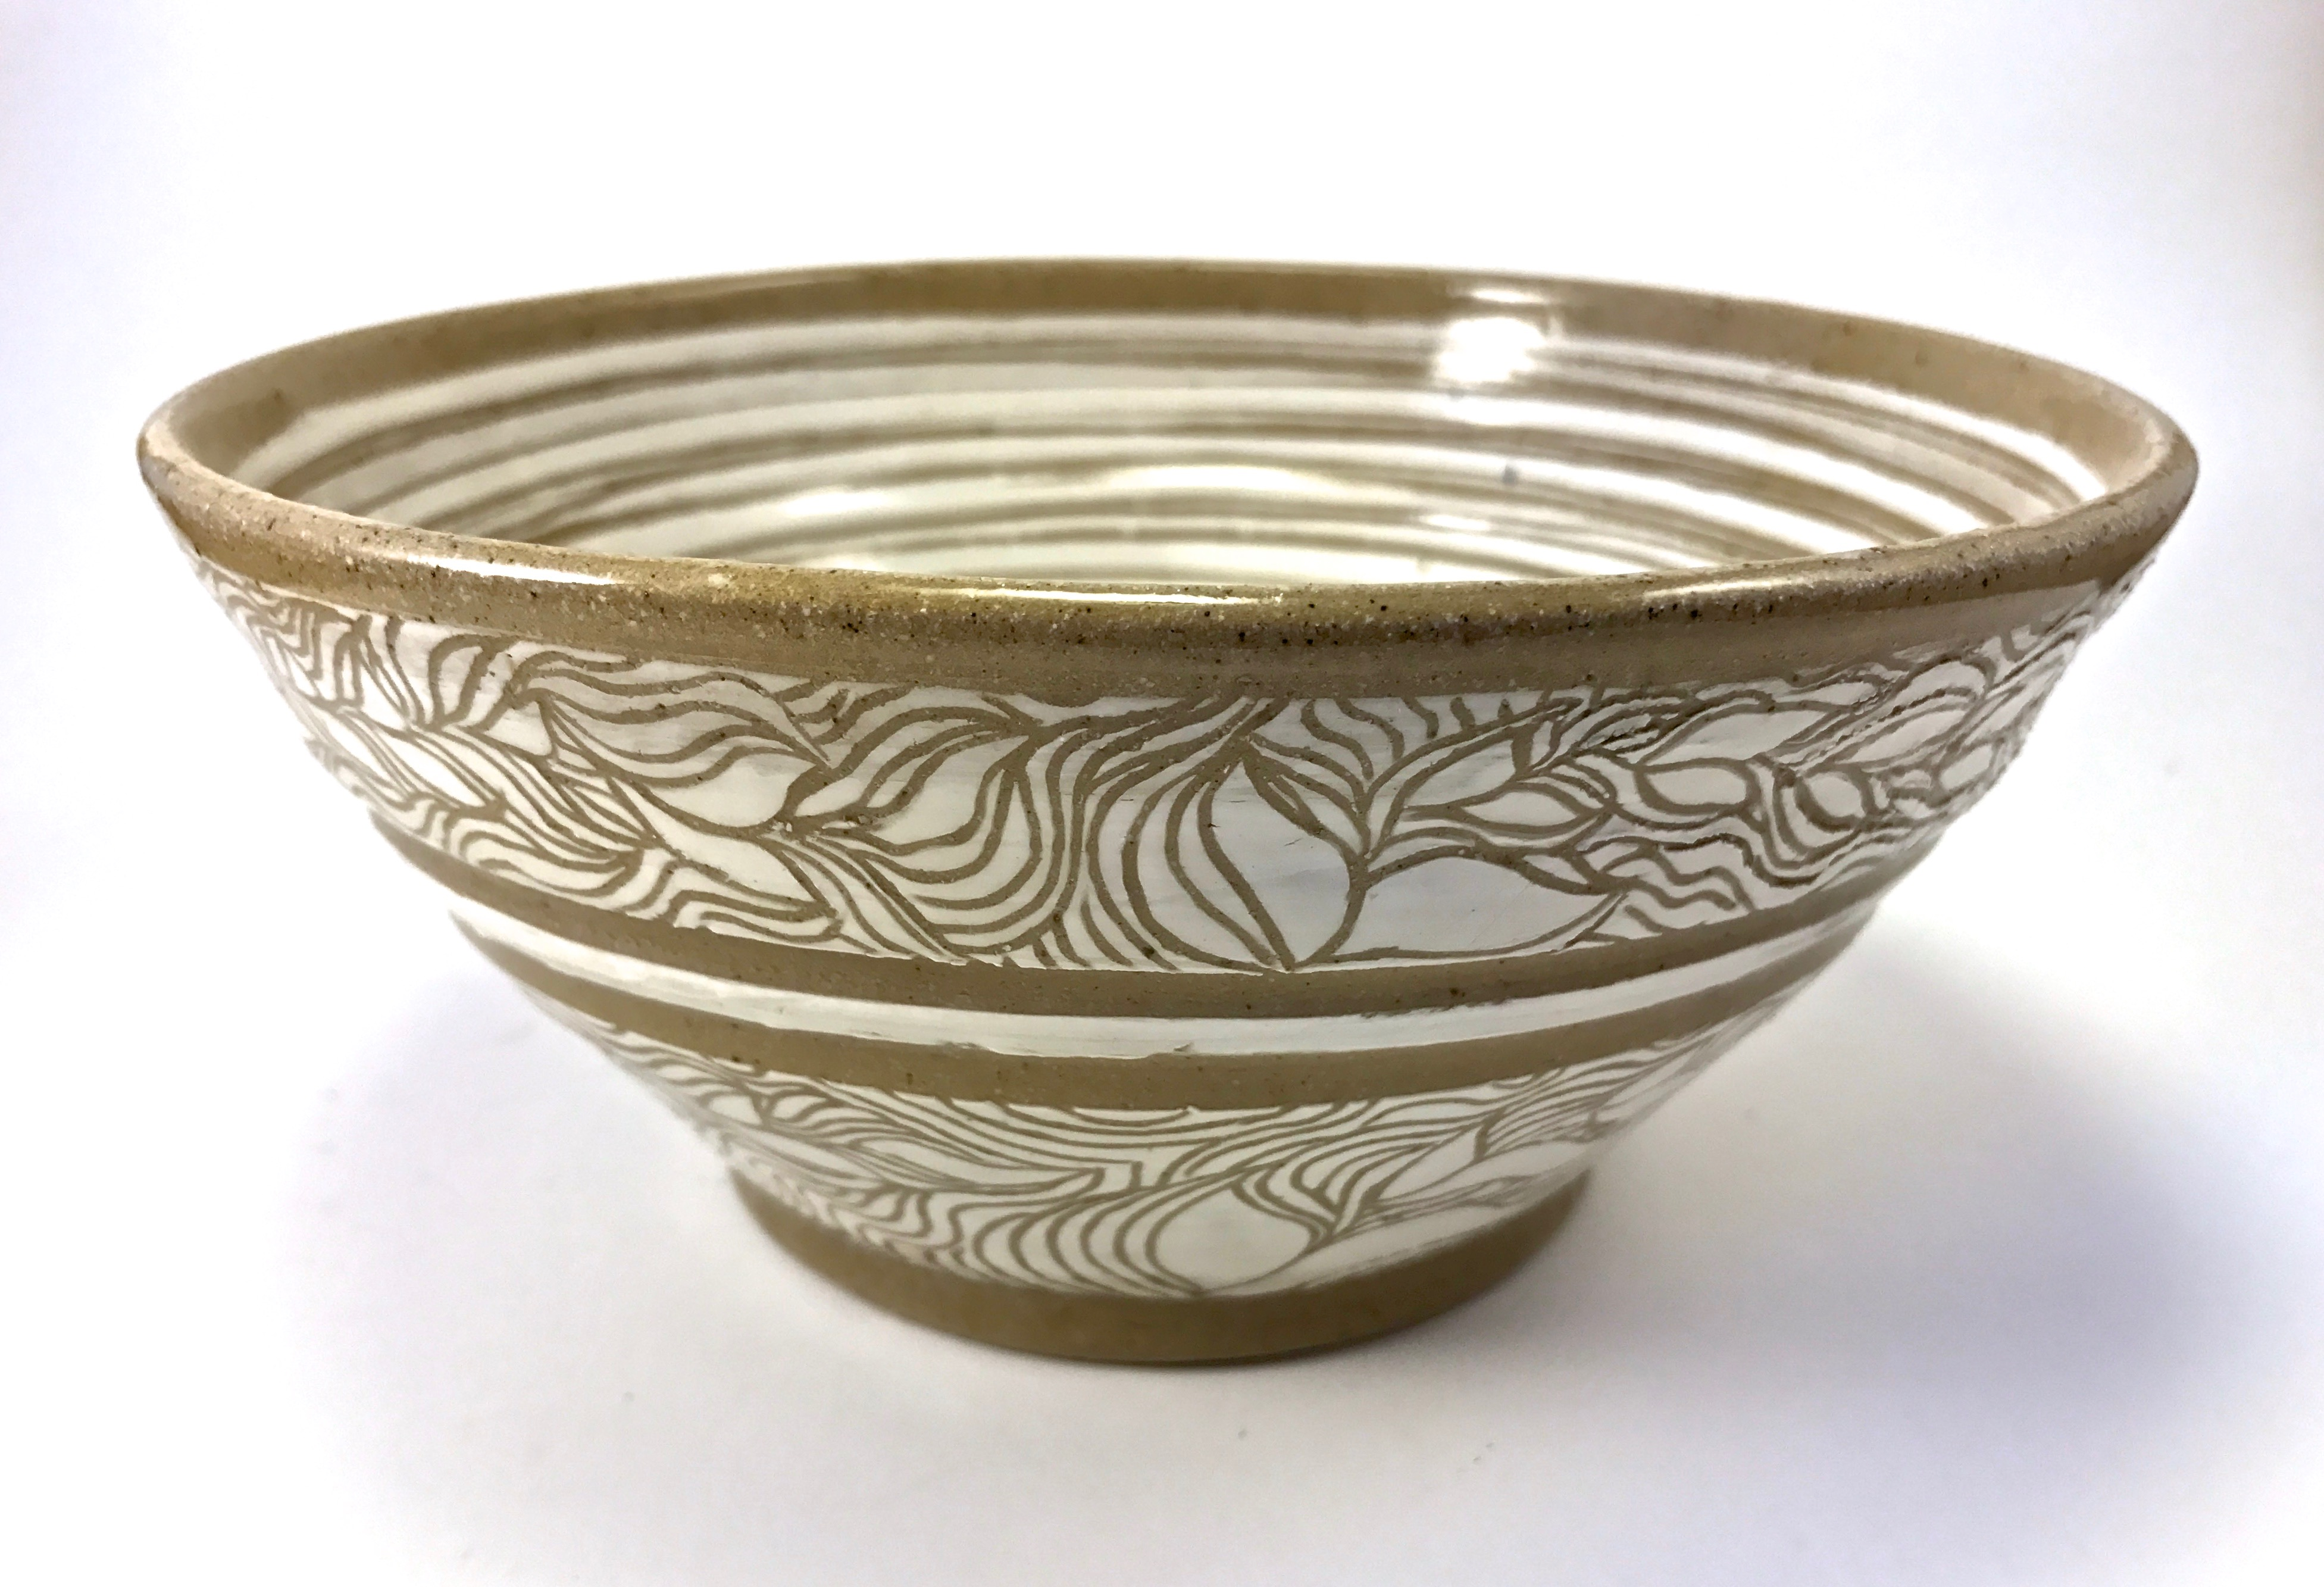 Two Tiered Bowl